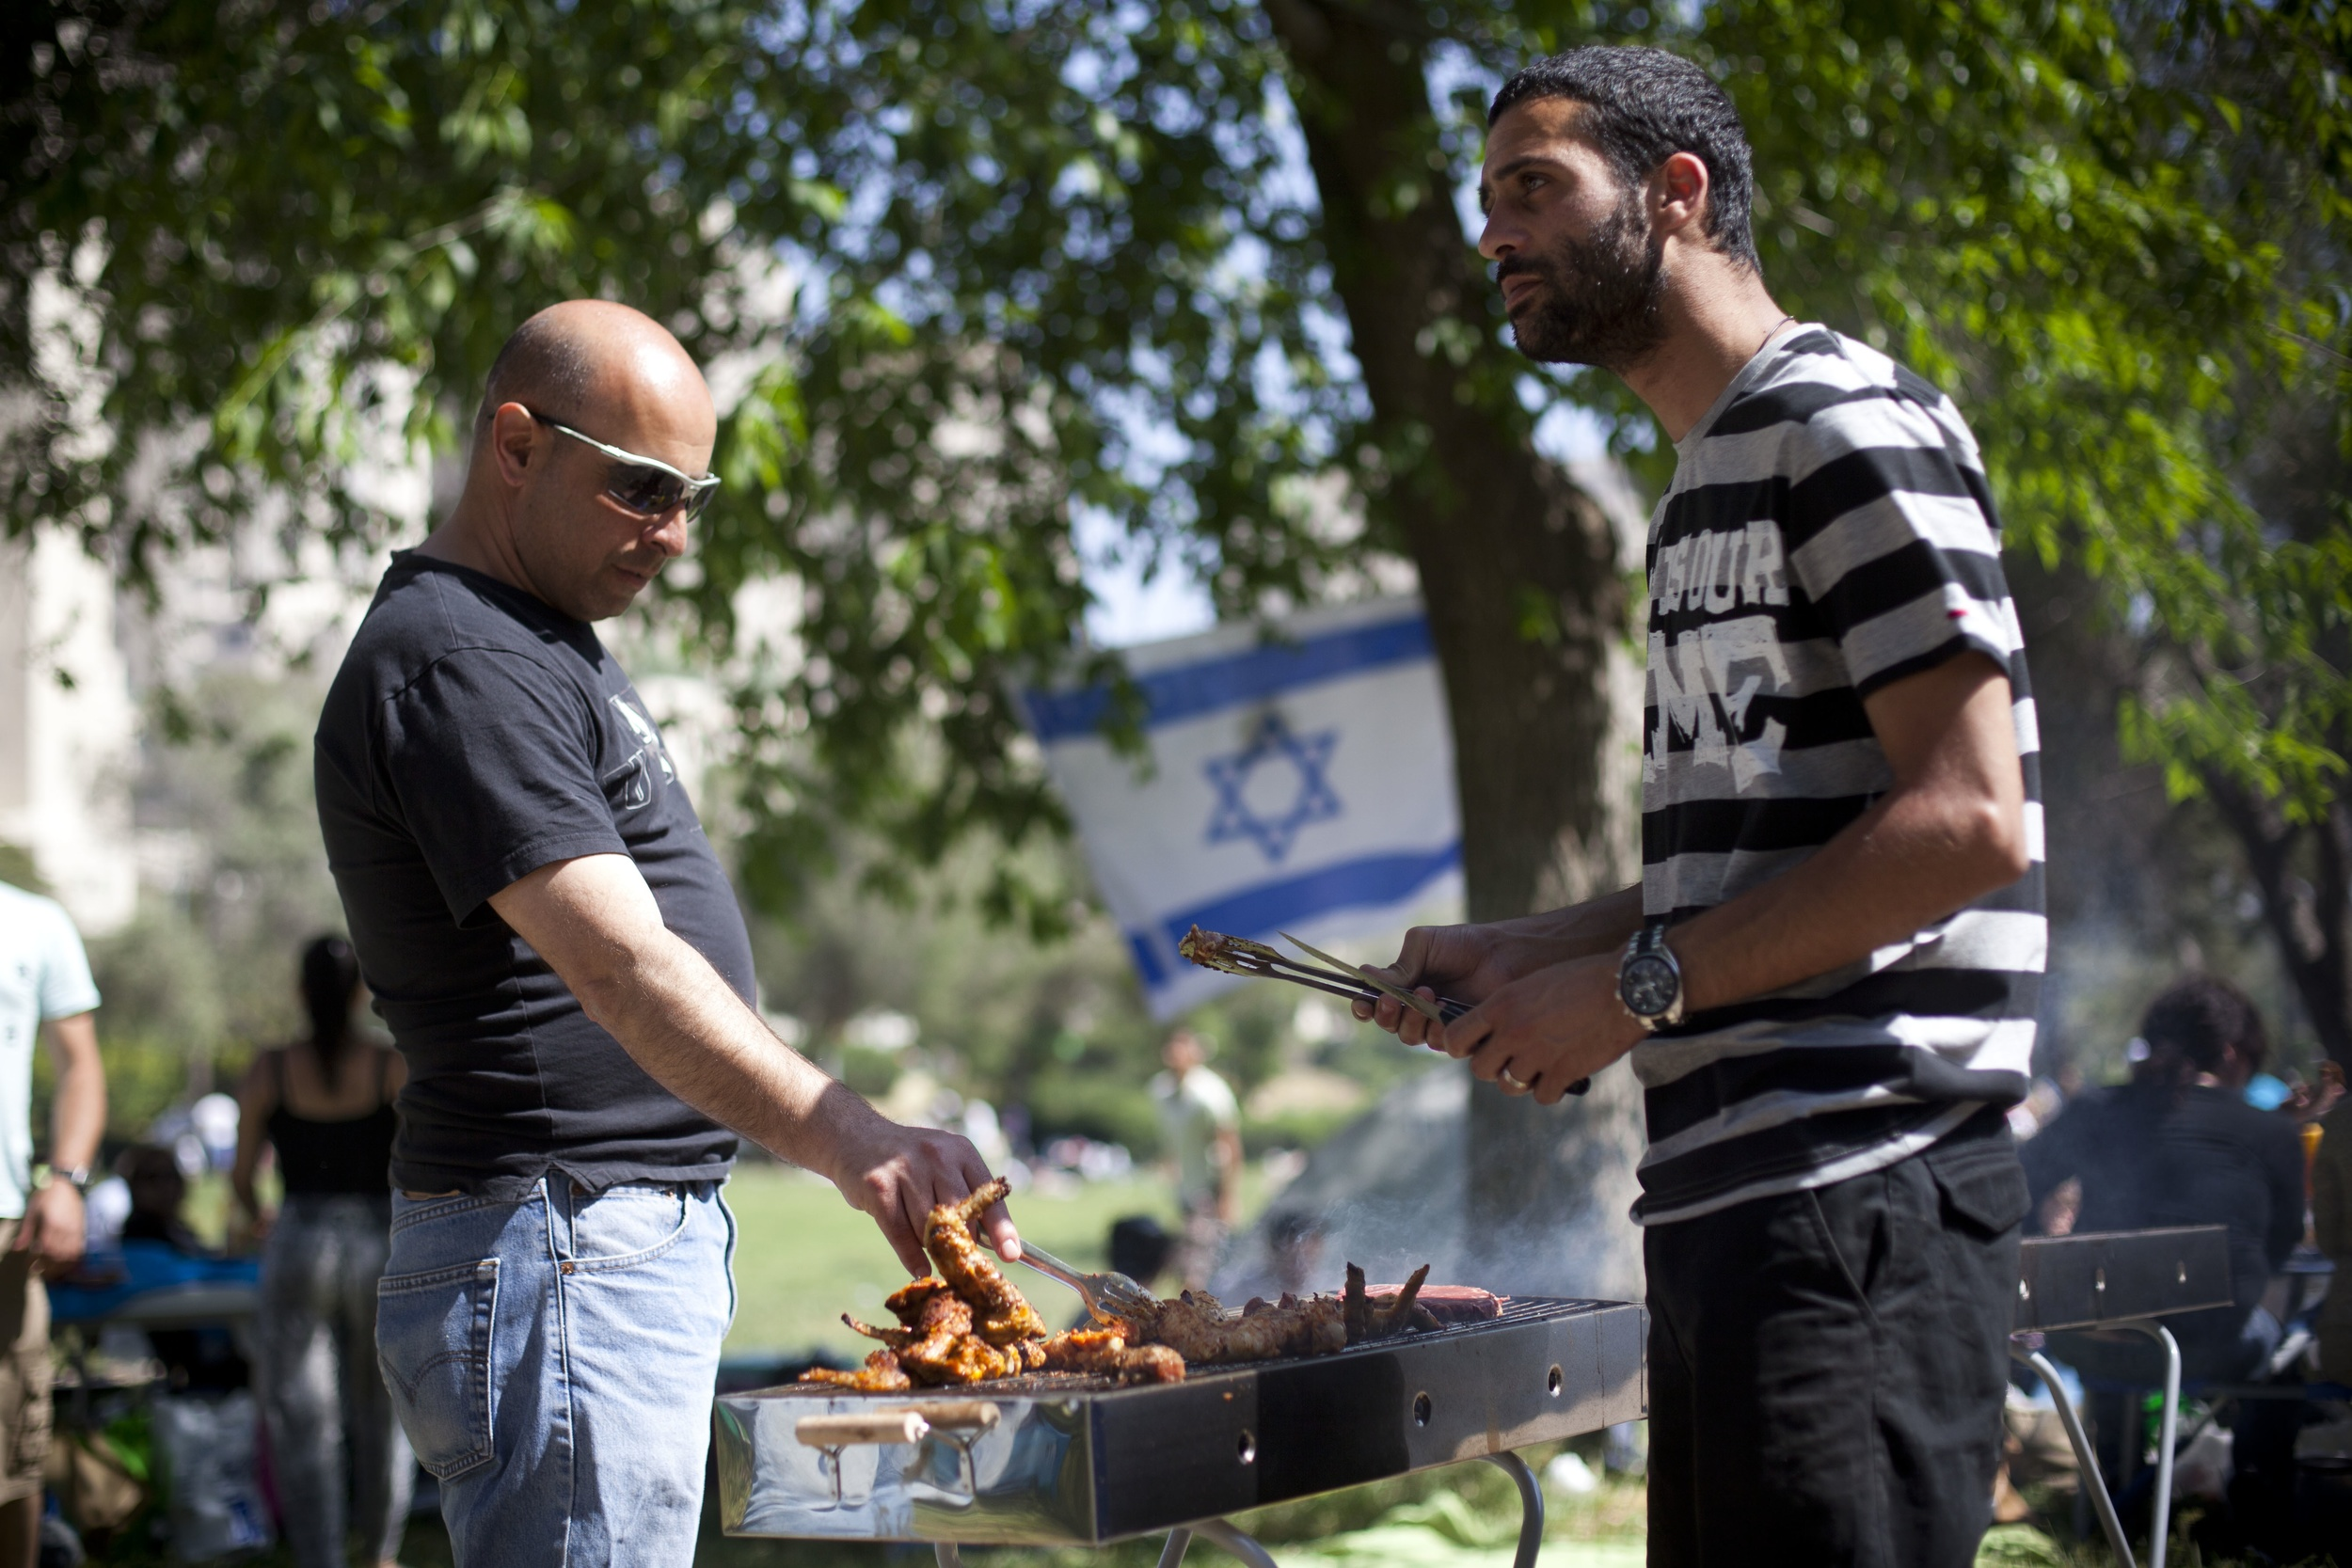 Click photo to download. Caption: An Israeli family has a barbecue during the celebration of Israel's 64th Independence Day at Sacher Park in Jerusalem, April 26, 2012. Credit: Yonatan Sindel/Flash90.